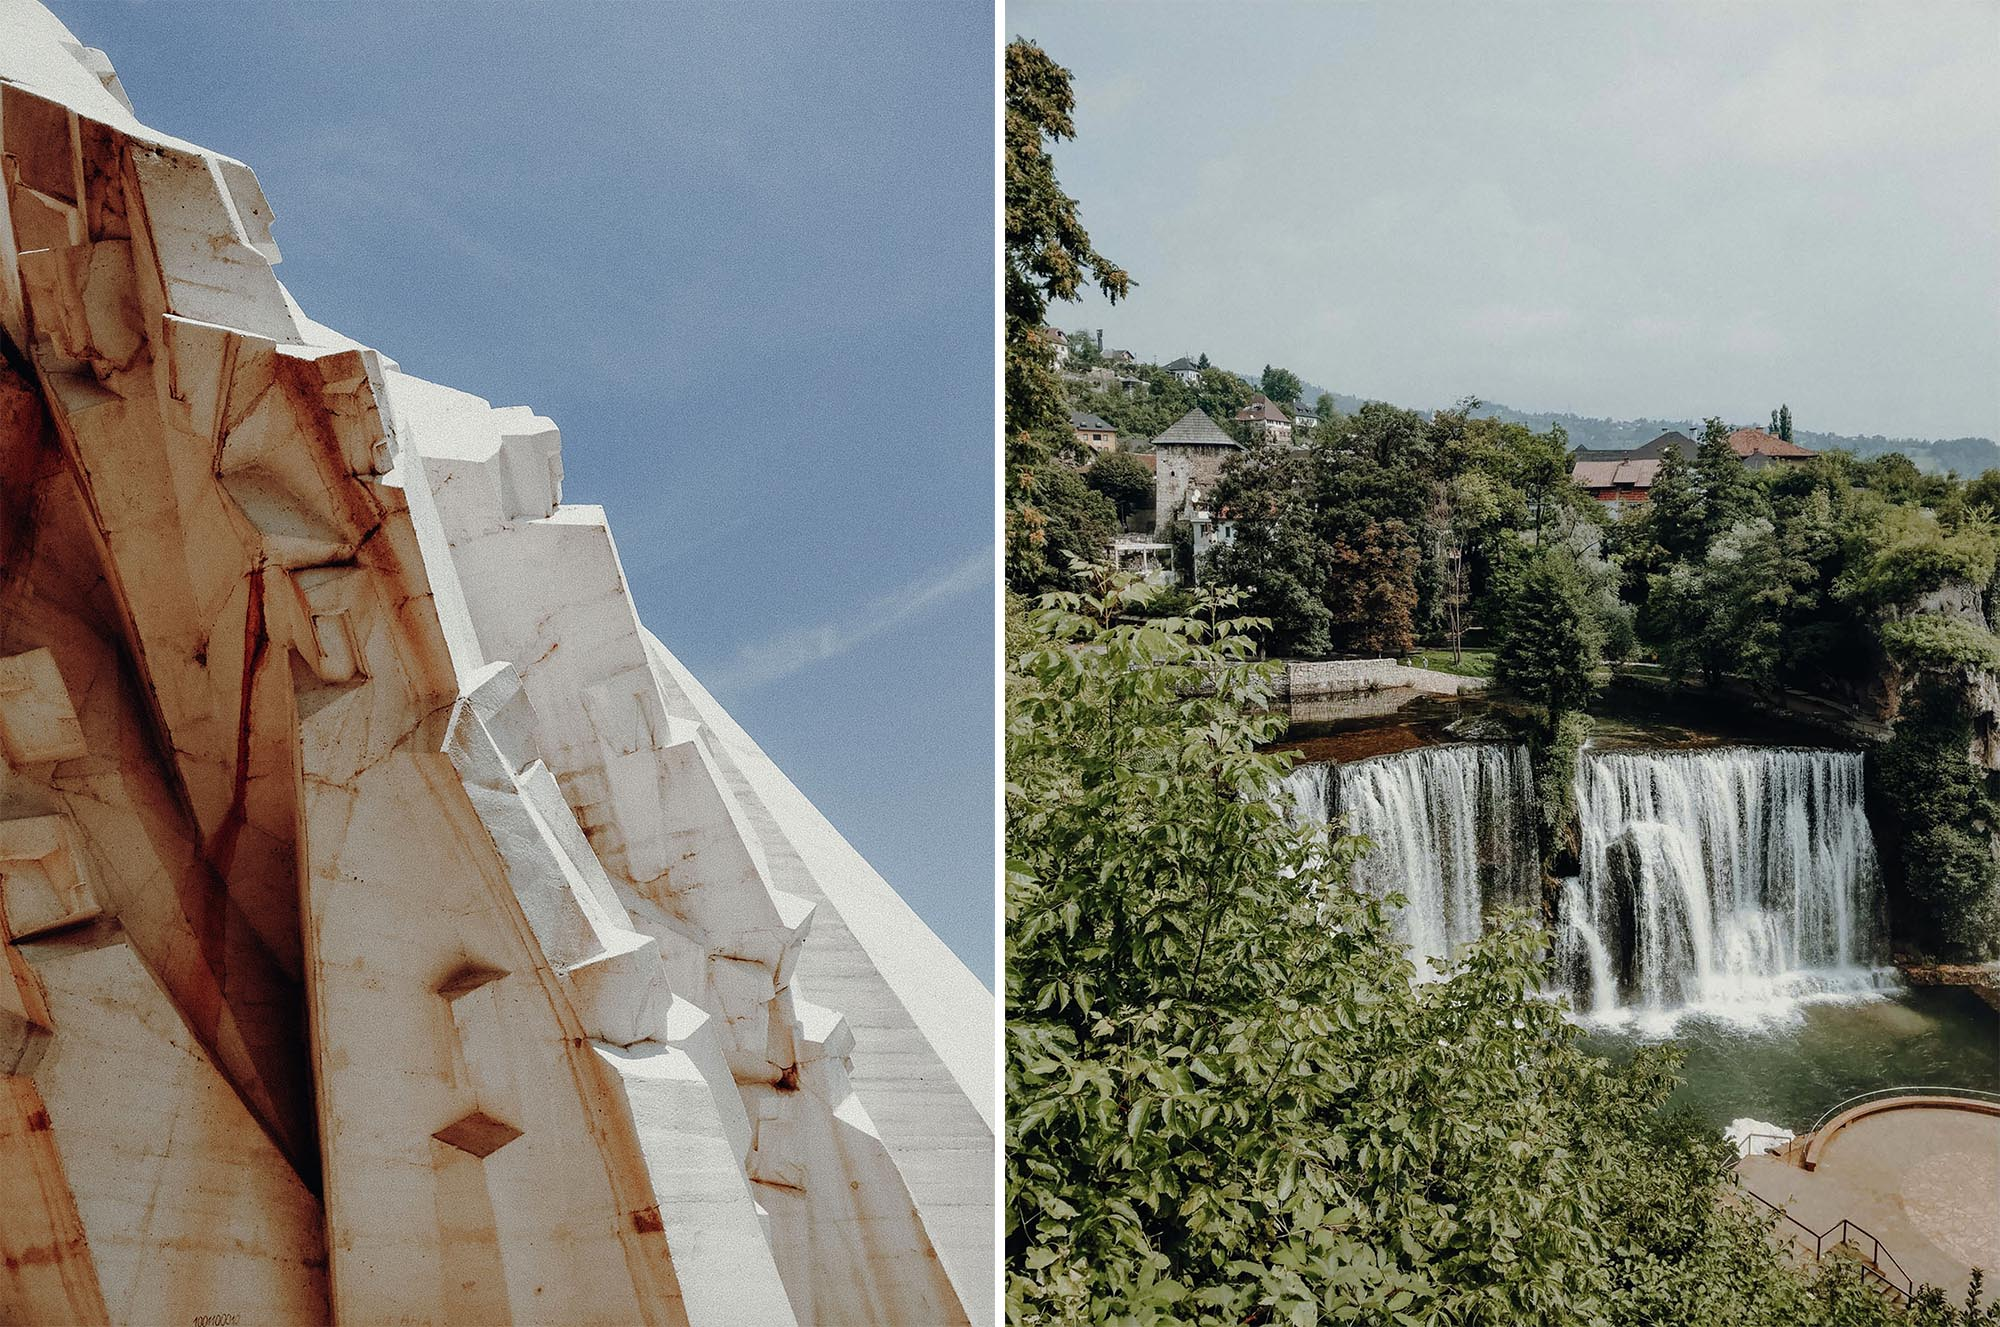 Kriegsdenkmal in Bosnien und der Wasserfall in Jajce. Roadtrip durch Bosnien Montenegro Kroatien. Am Balkan vegan essen, reisen, fahren, packen. Dogdays of Summer vegan vintage Blog